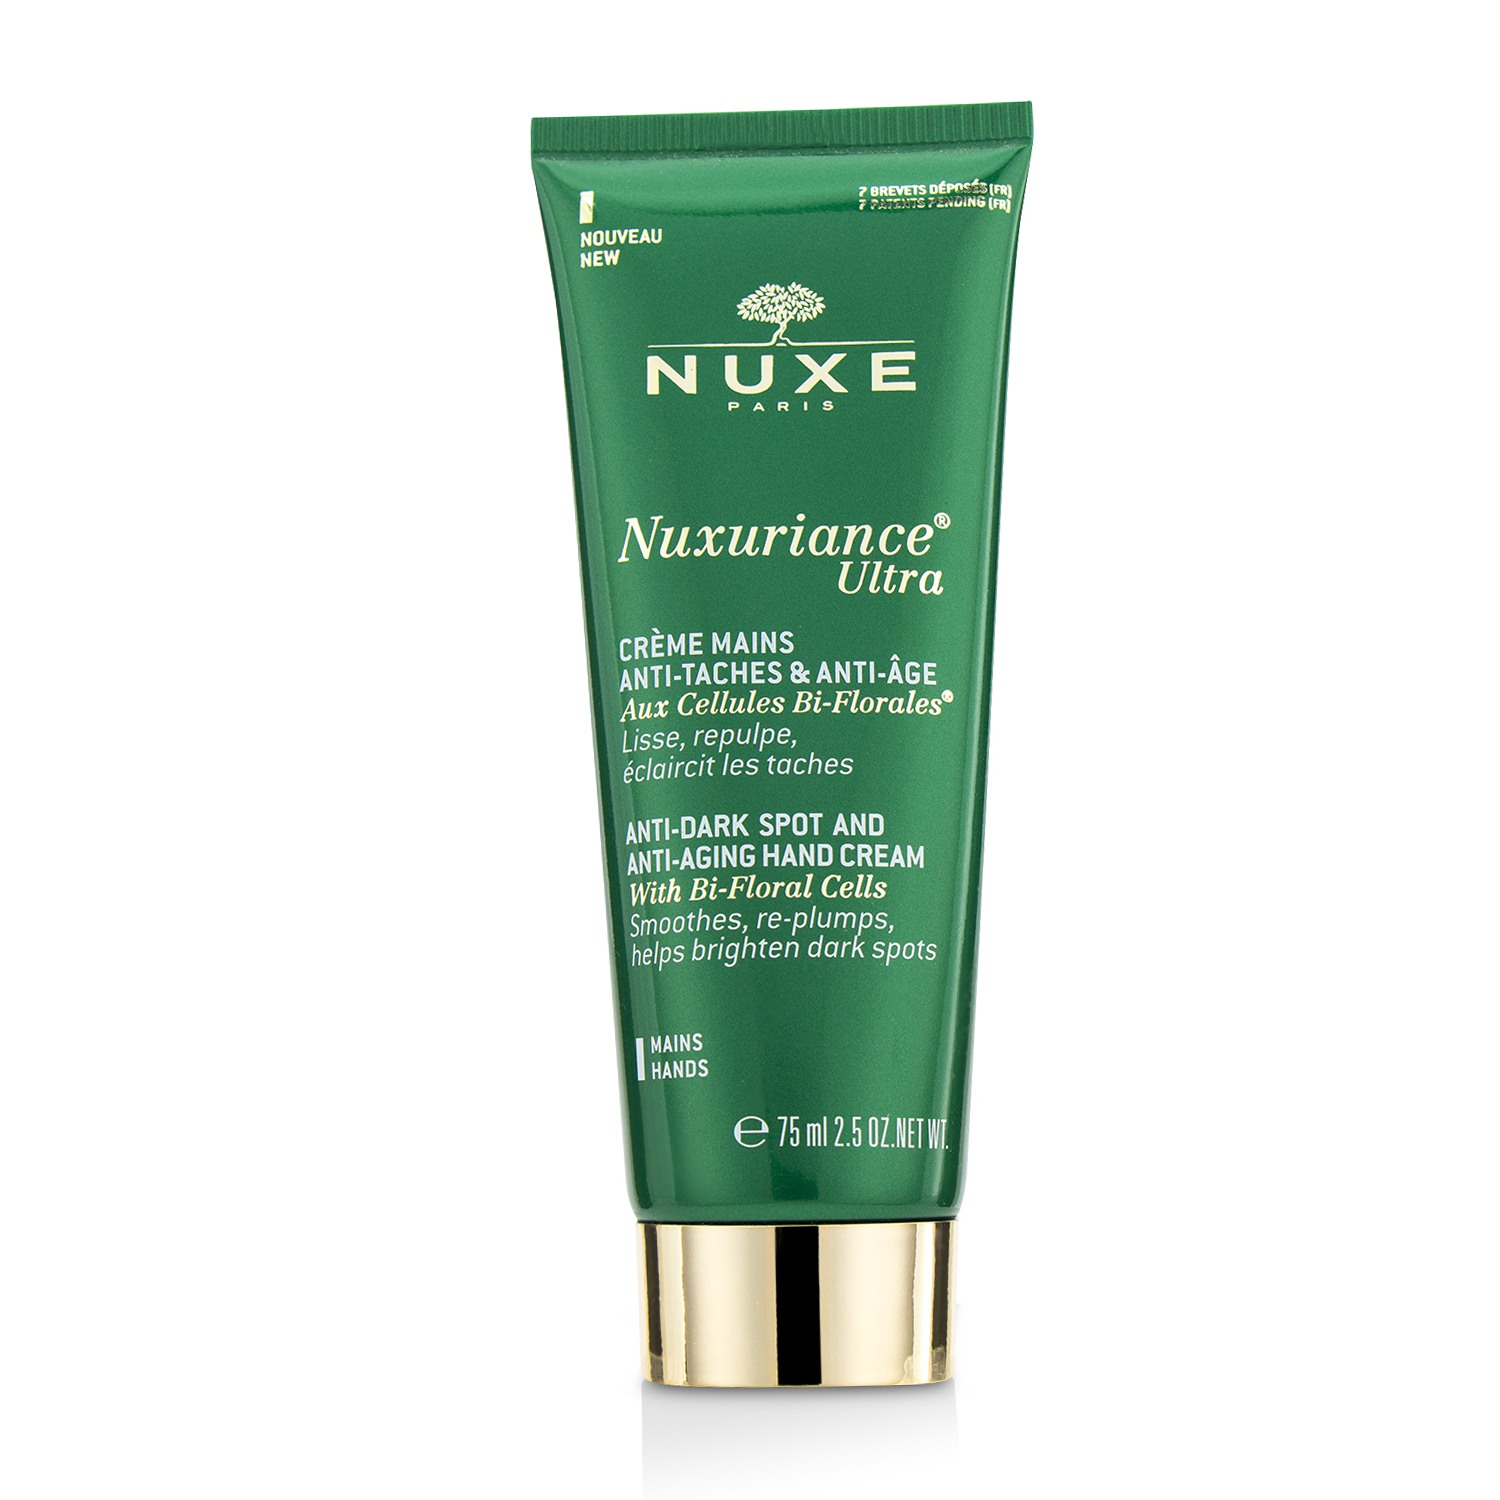 Nuxuriance Ultra Anti-Aging Hand Cream Nuxe Image